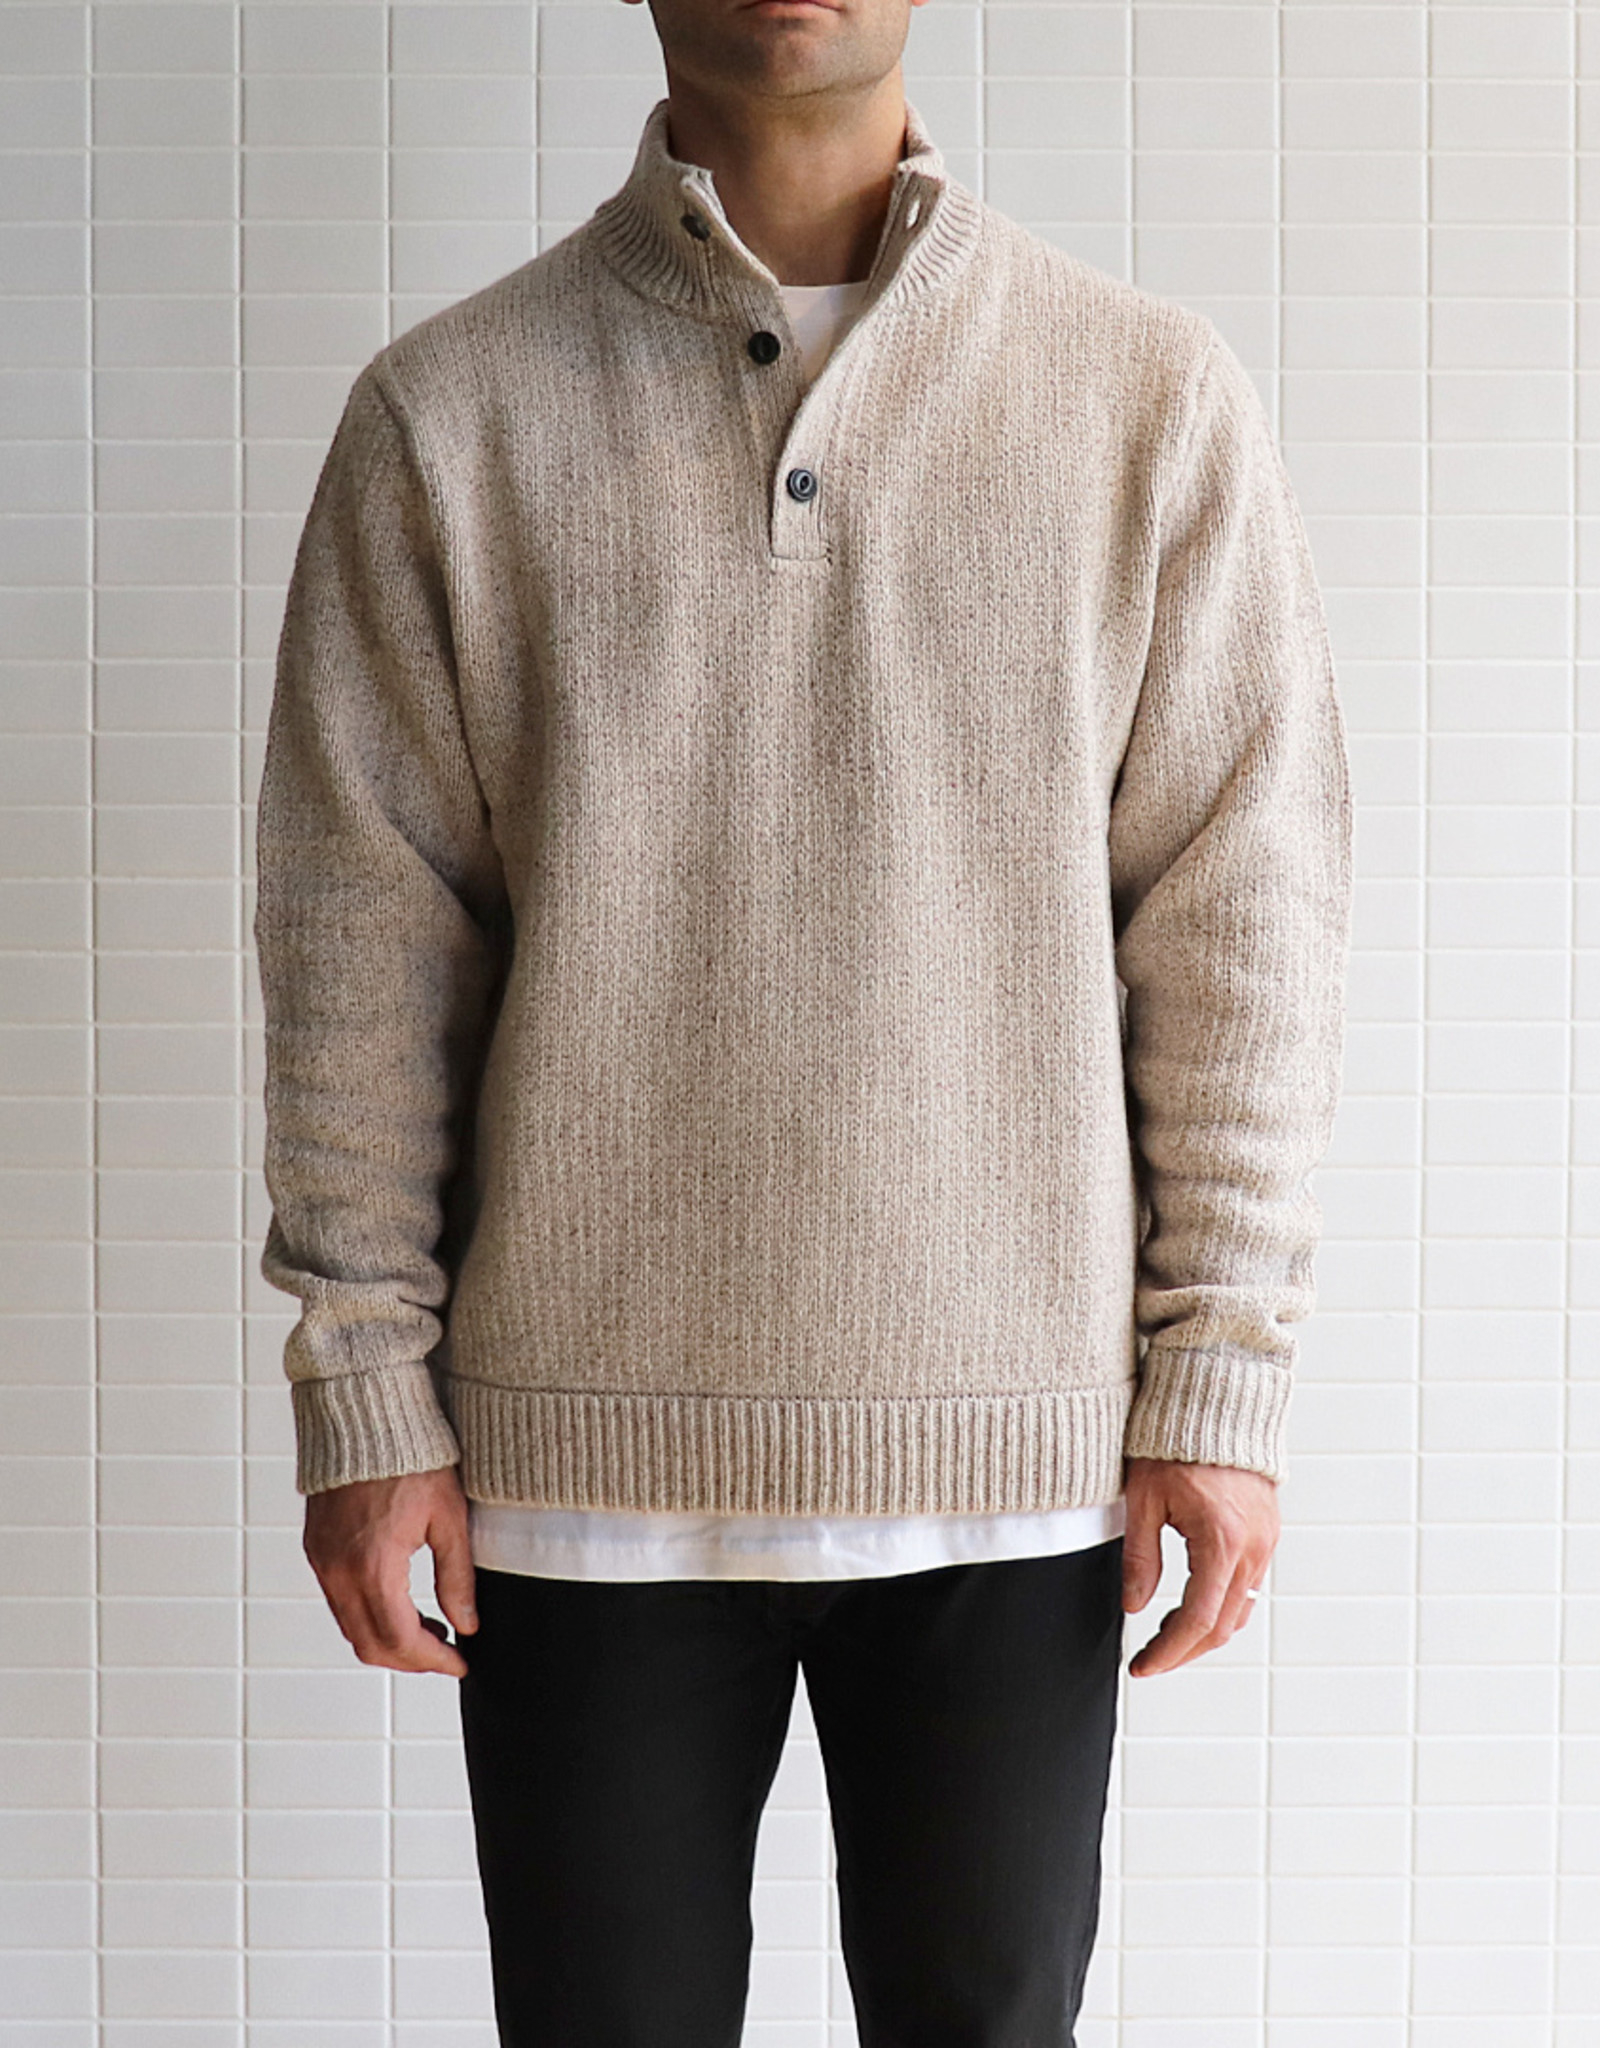 Patagonia - M's Off Country P/O Sweater - Beige - Small